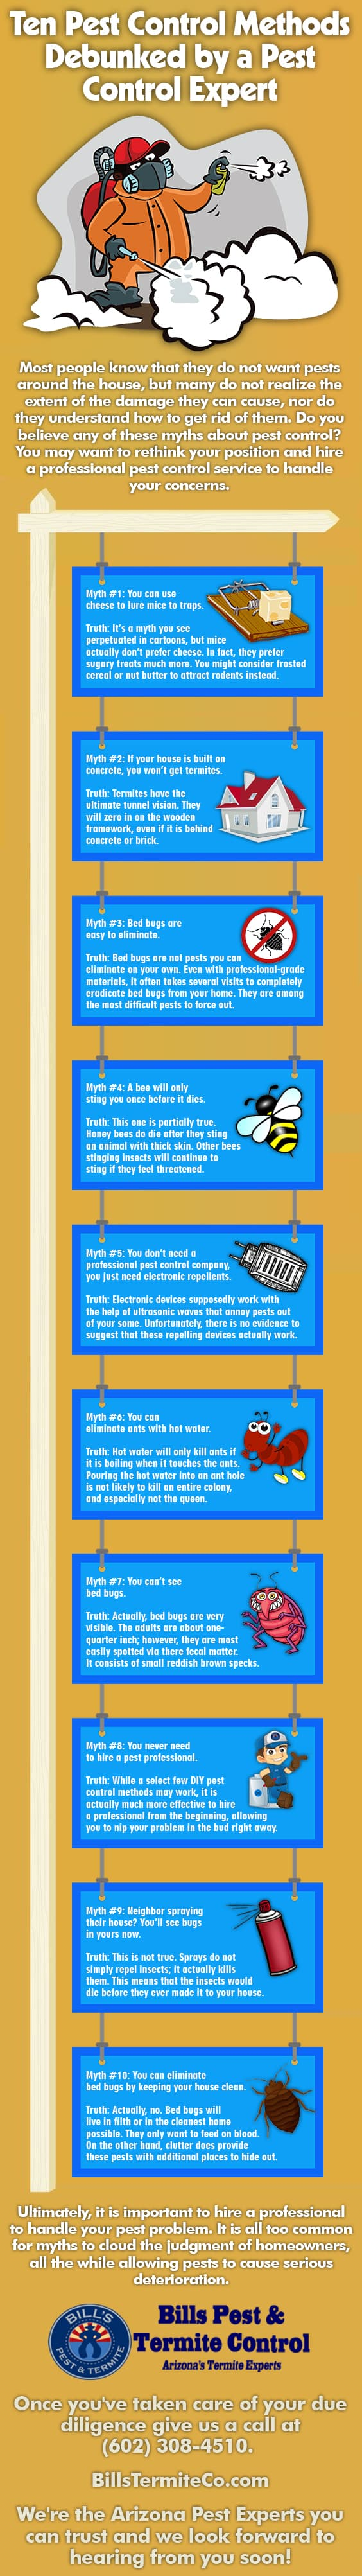 infographic-154-ten-pest-control-methods-debunked-by-a-pest-control-expert